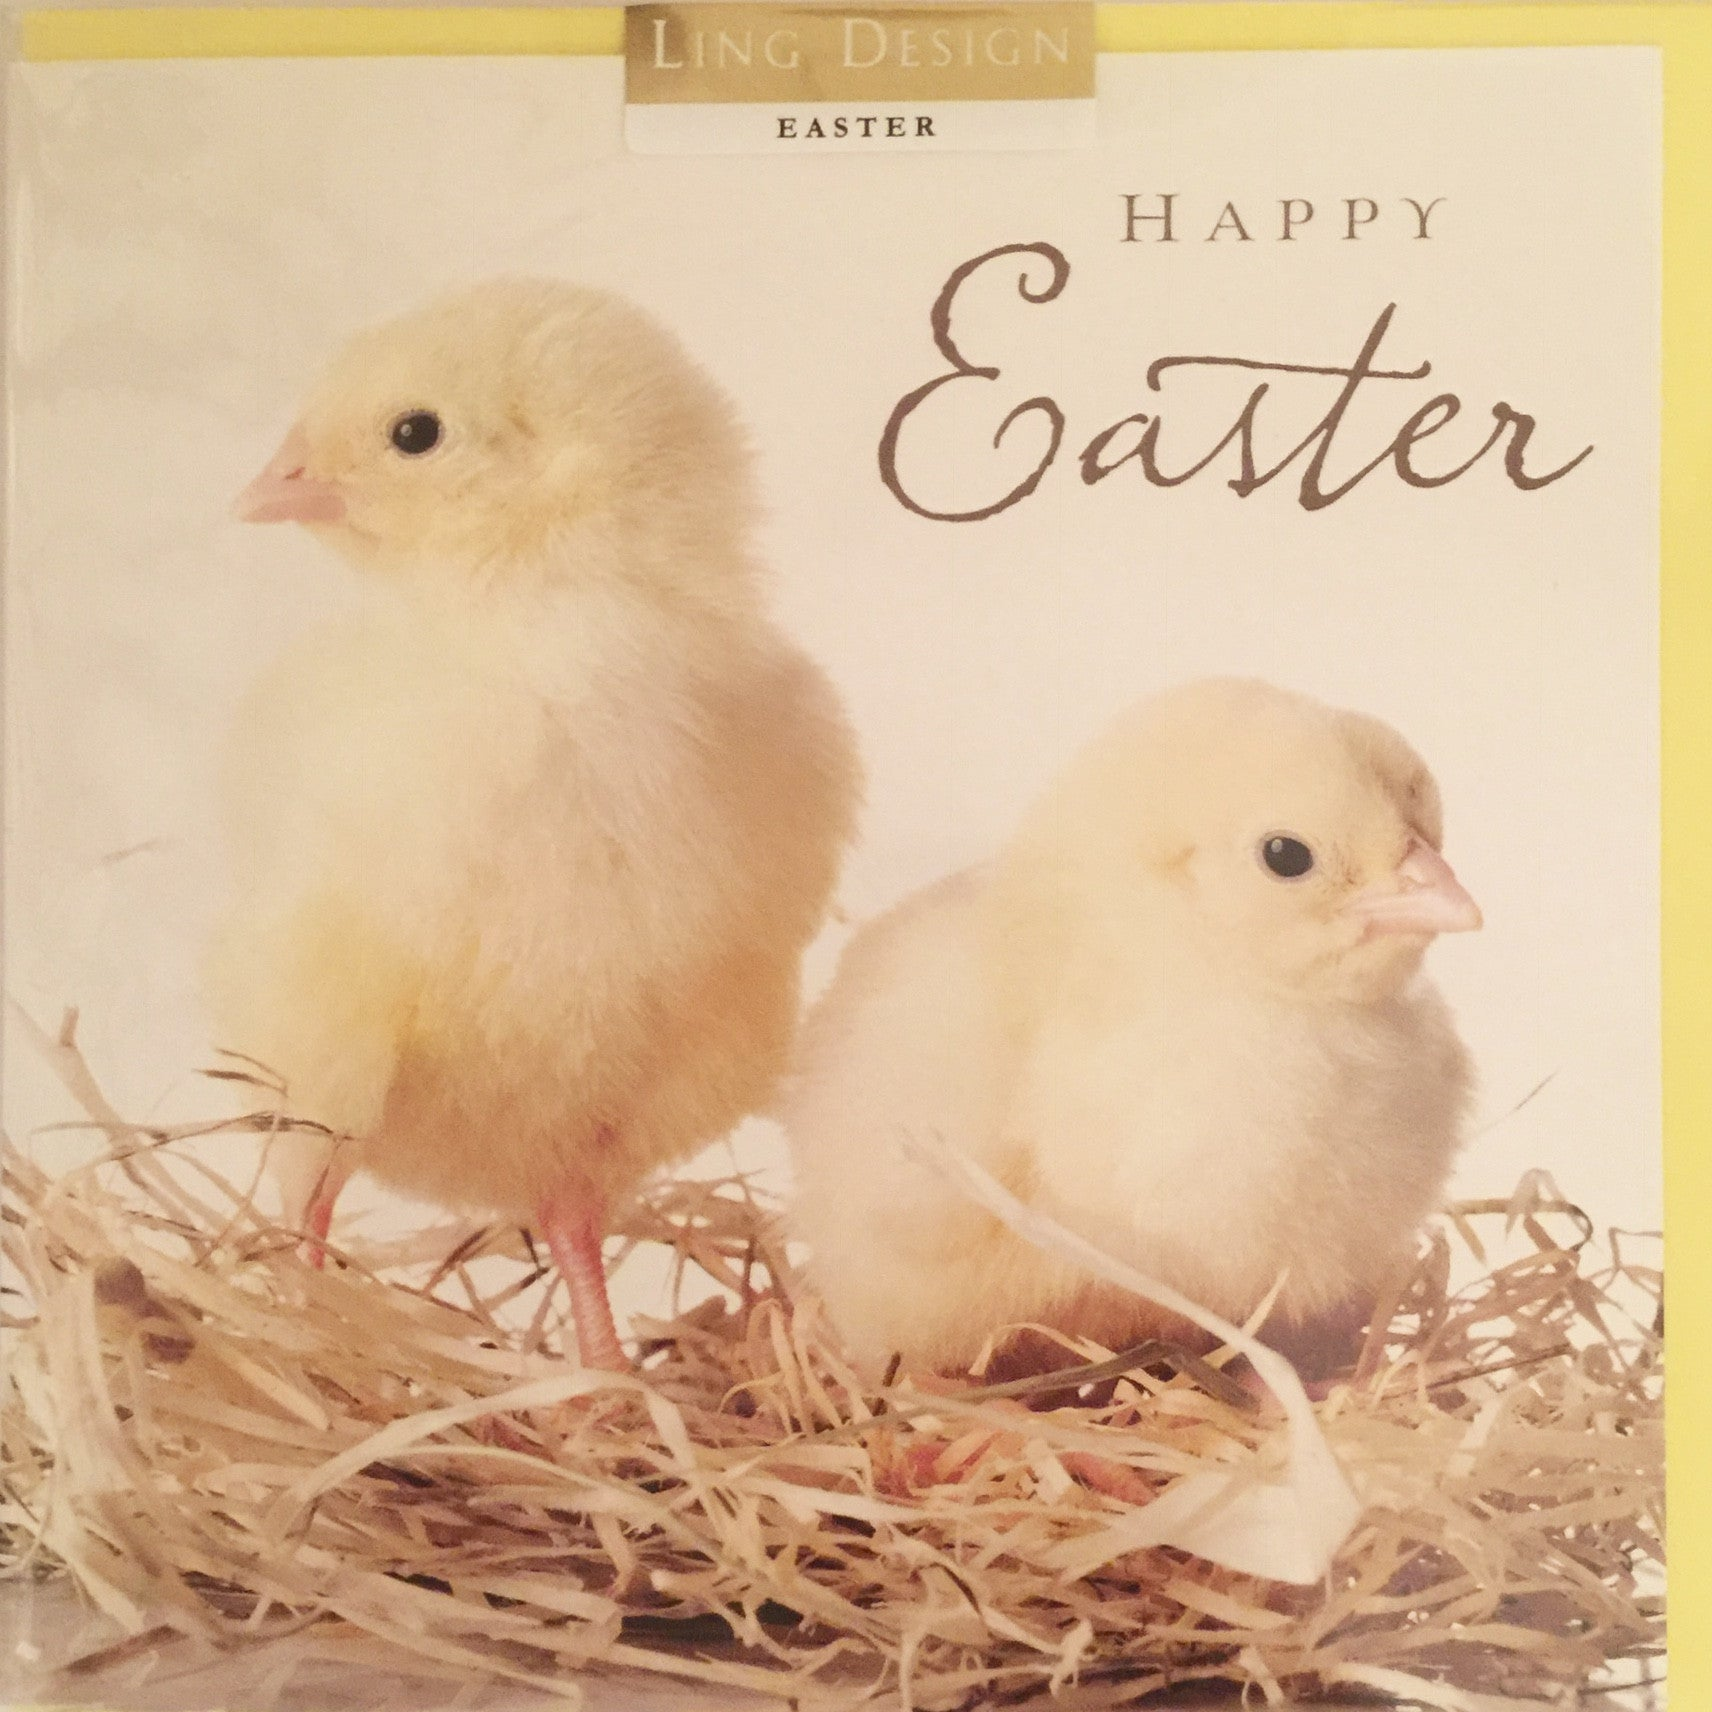 Little Young Chicks on Nest Easter Greeting Card, PEC-Paper E Clips, Putti Fine Furnishings